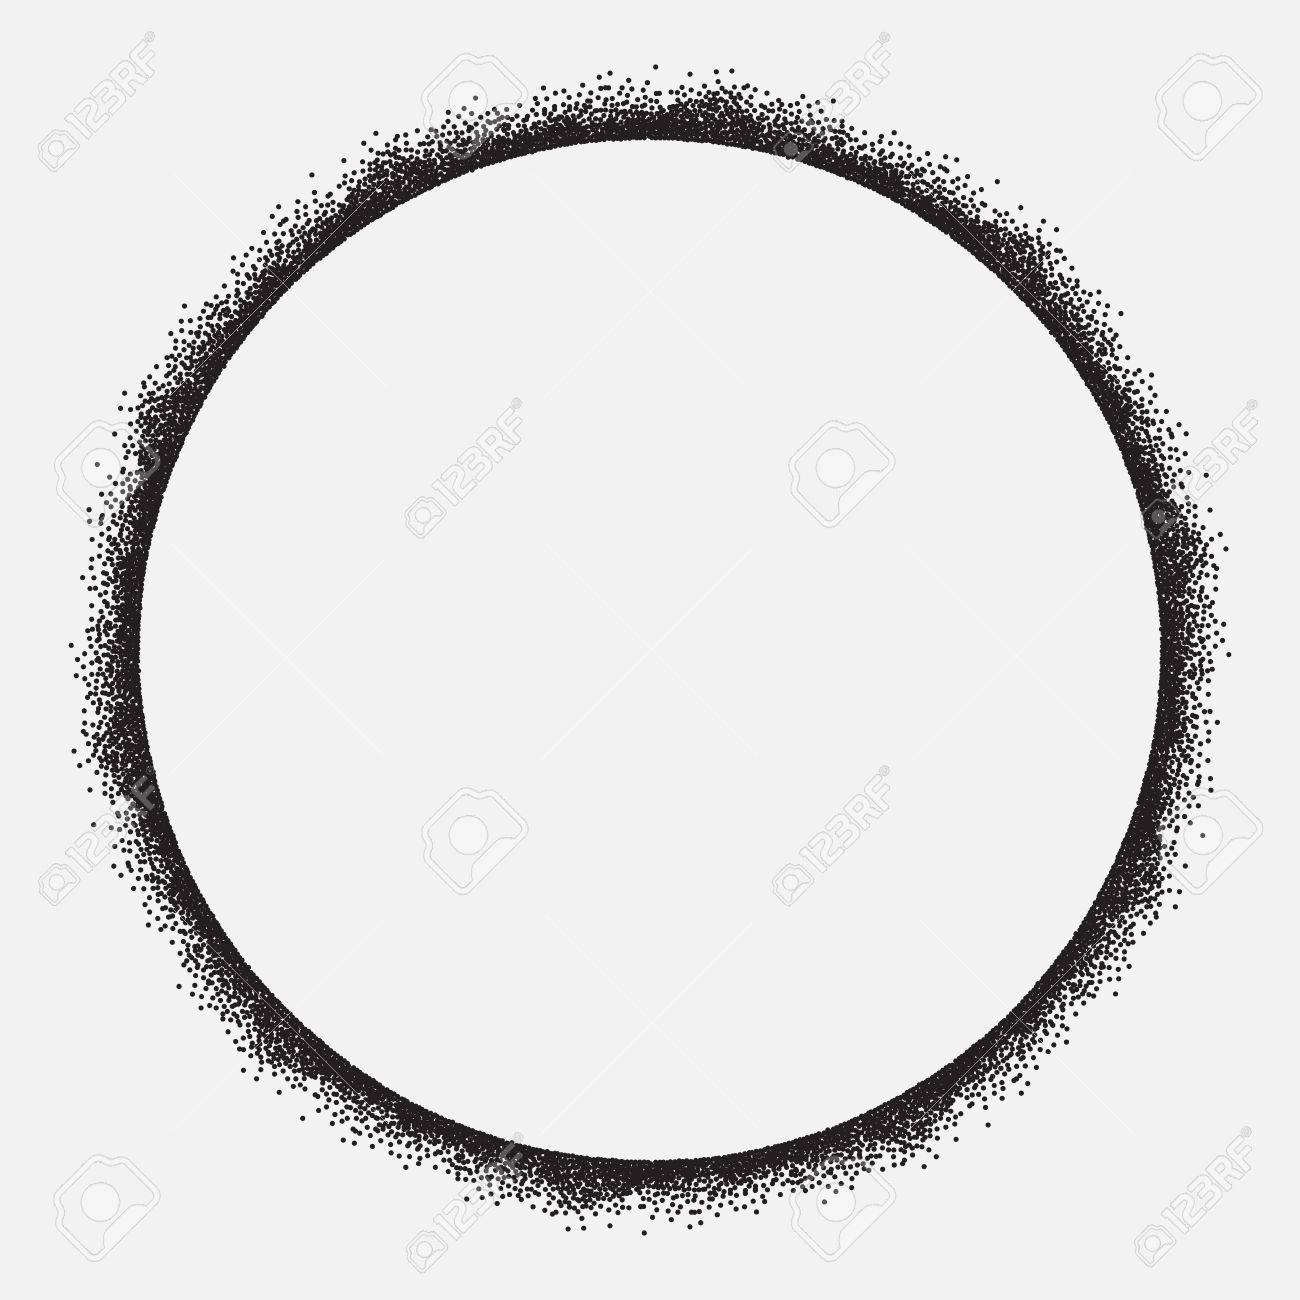 Circle Frame, Grunge Design, Isolated, Vector Royalty Free Cliparts ...